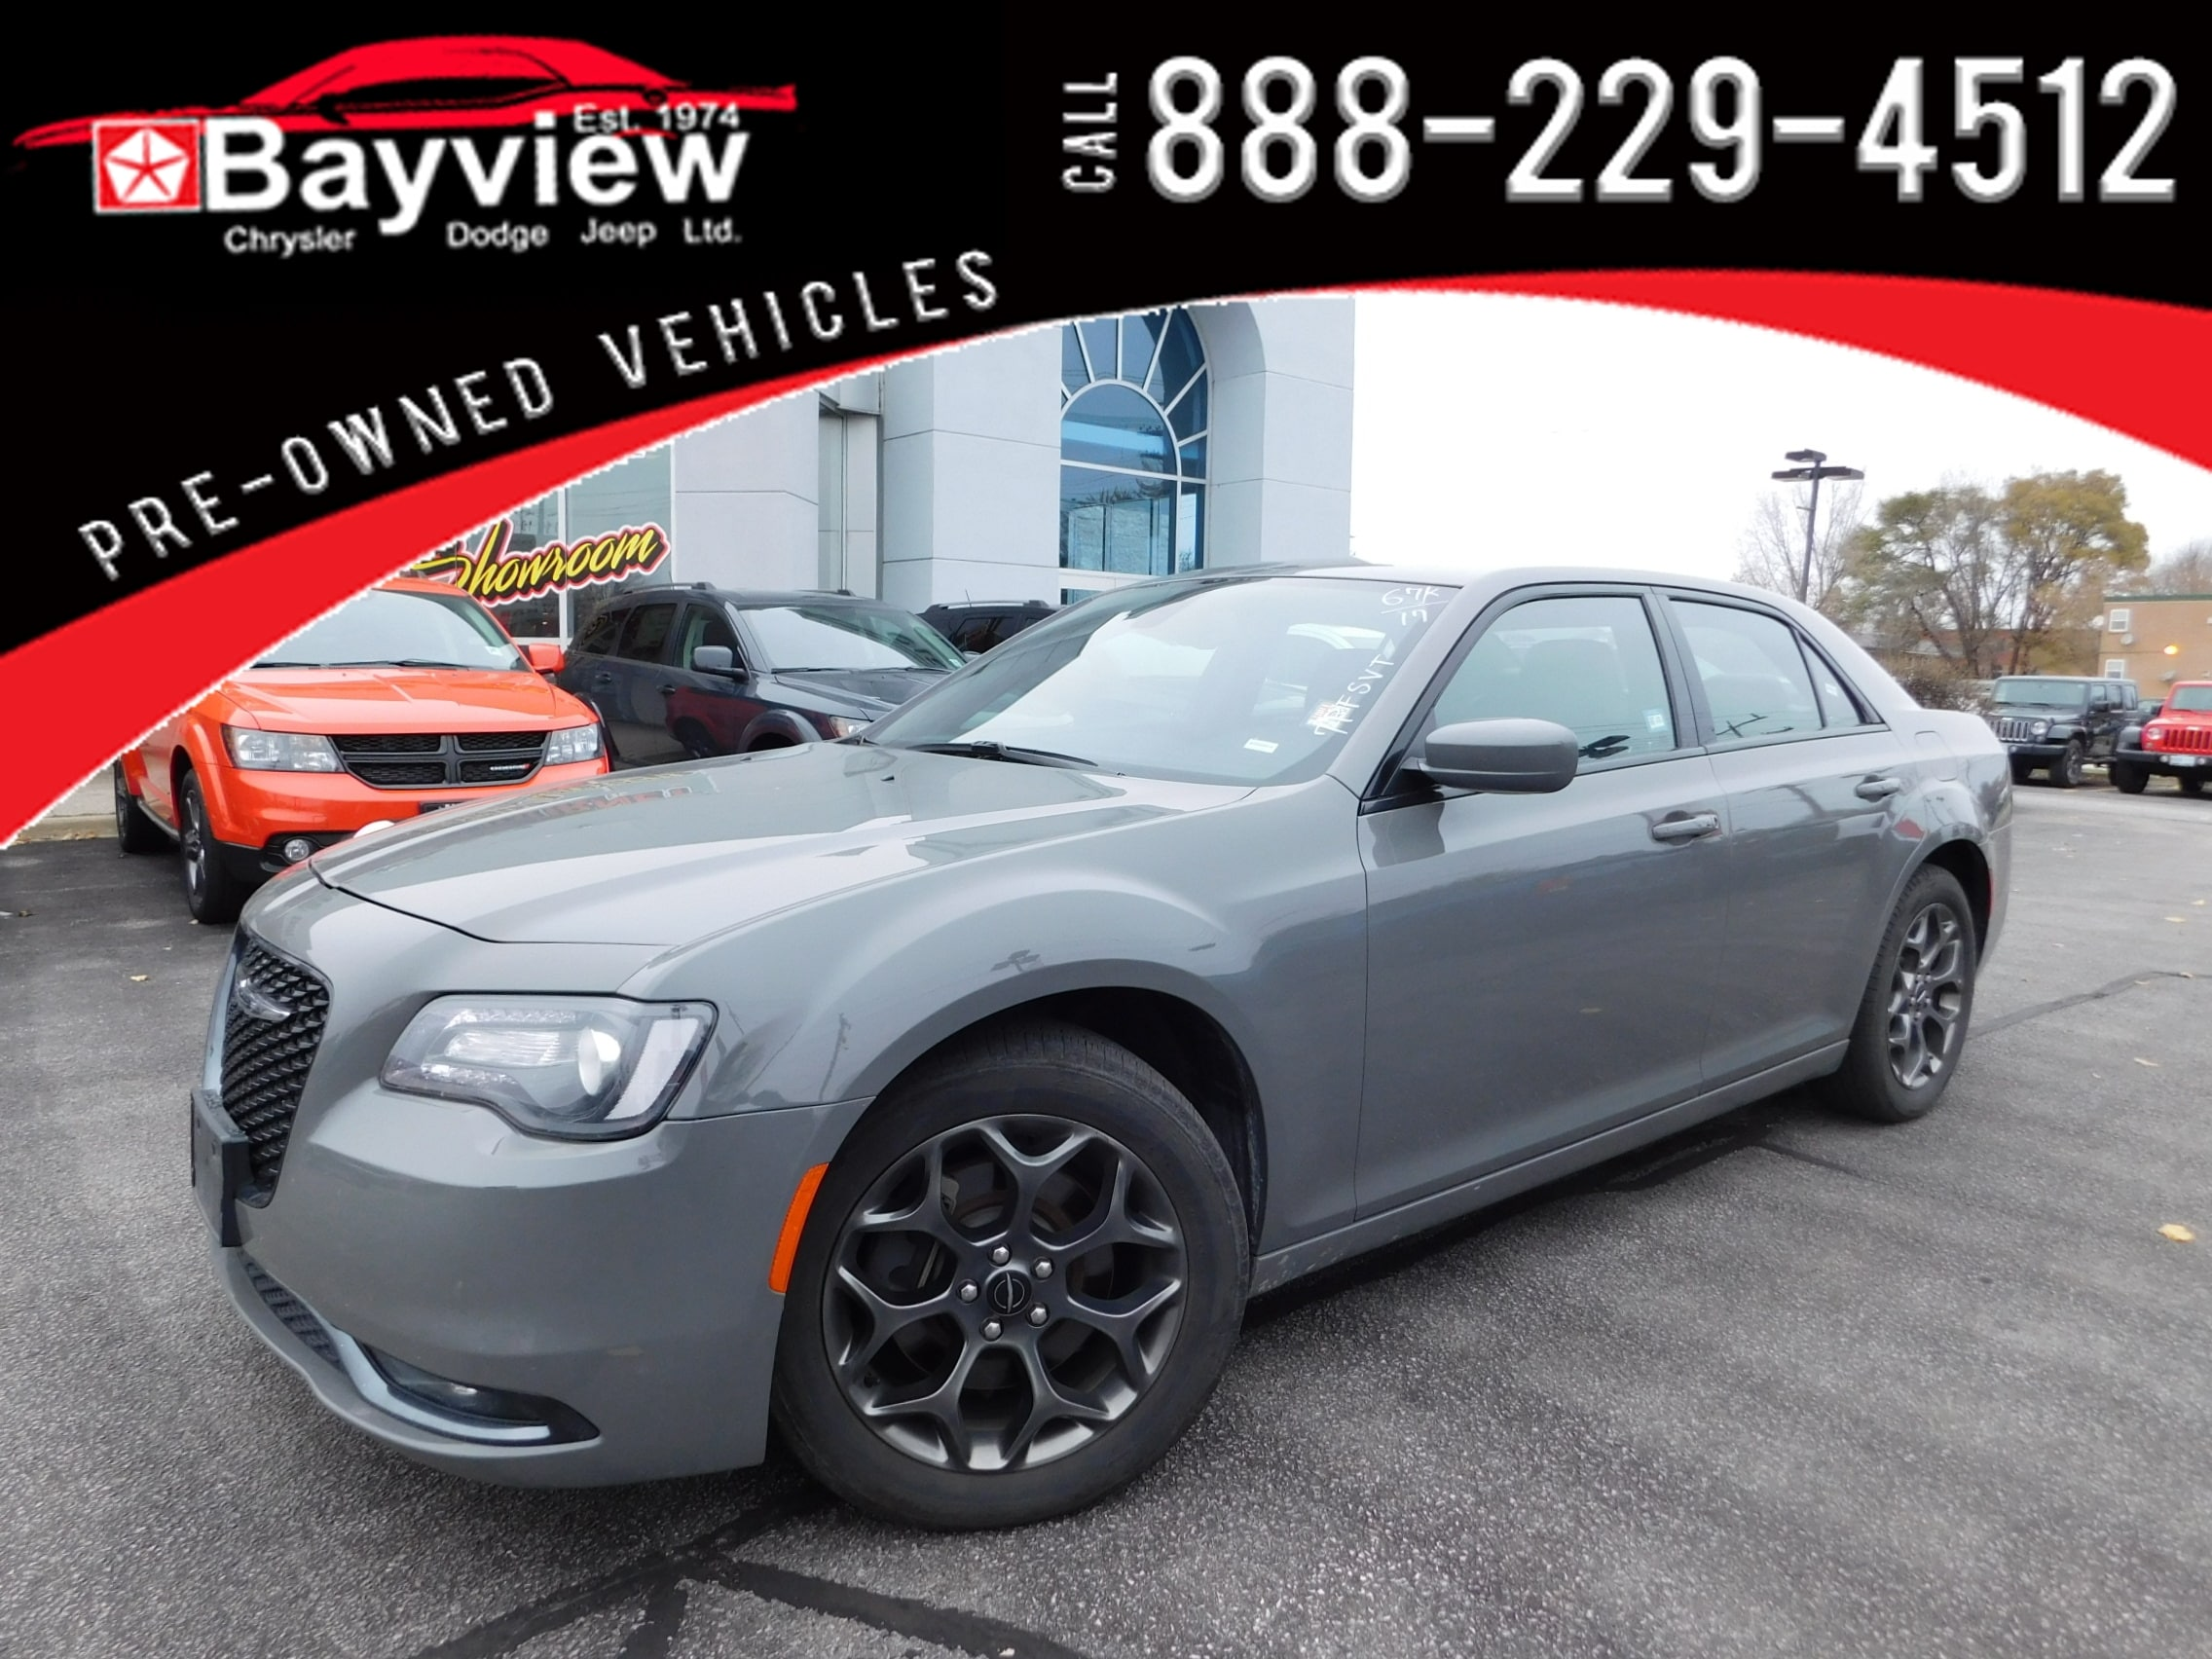 2017 Chrysler 300 S Berline